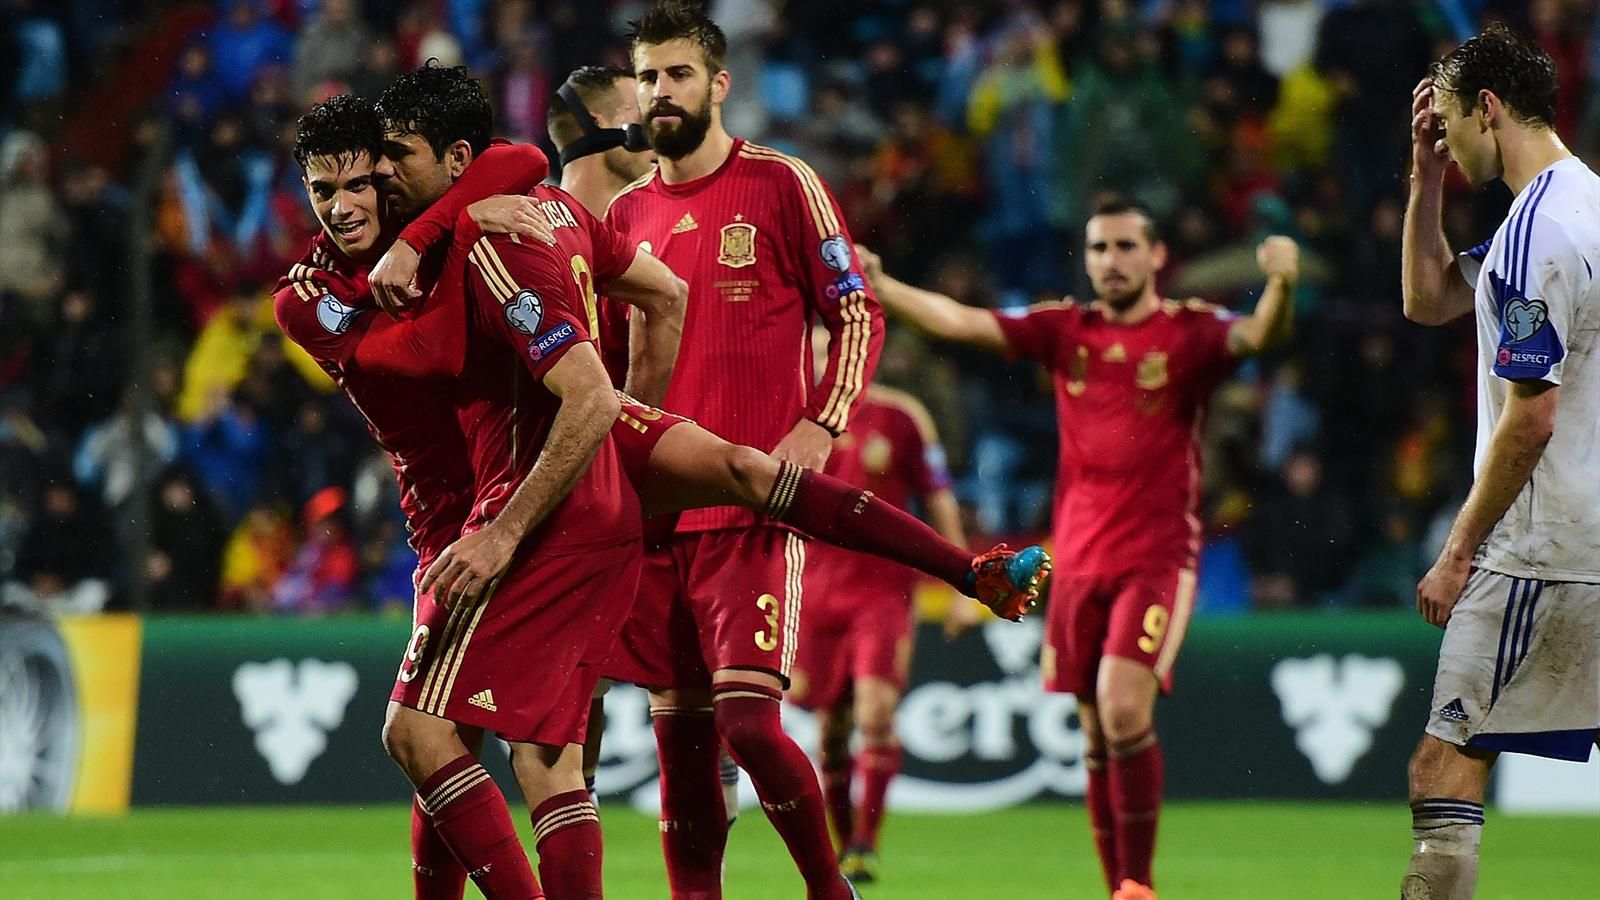 Match Espagne vs Biélorussie en direct live streaming